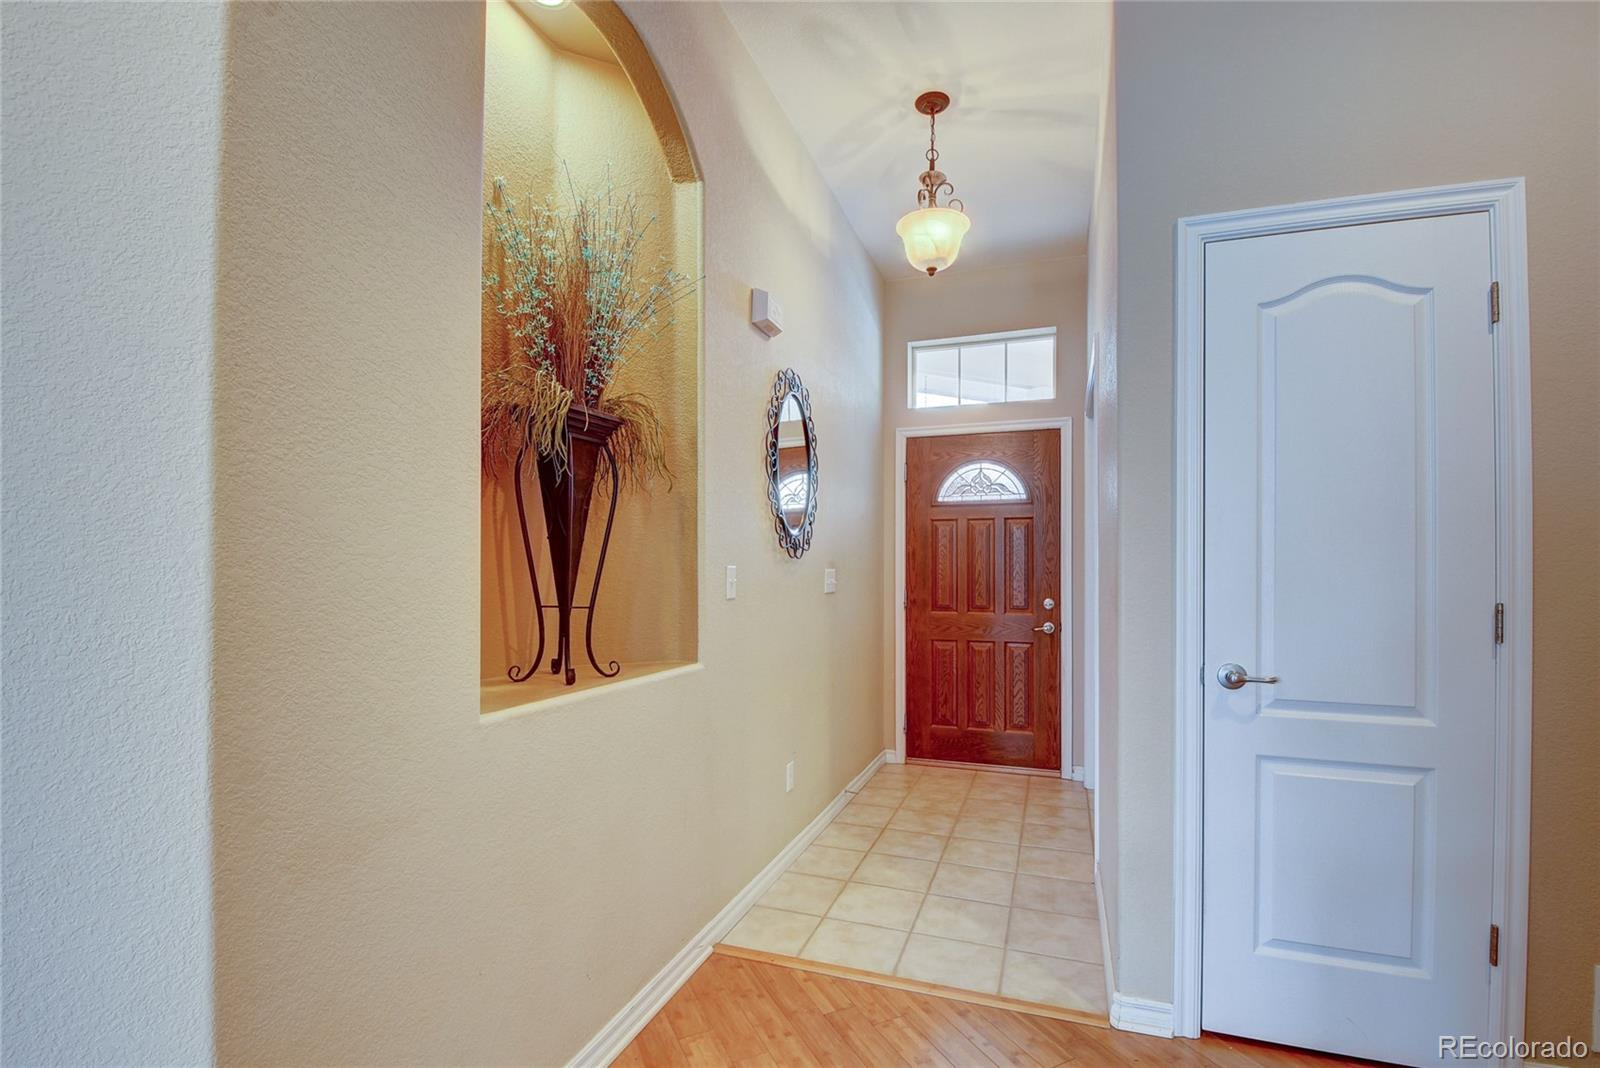 MLS# 6360939 - 5 - 10581 Pearlwood Circle, Highlands Ranch, CO 80126